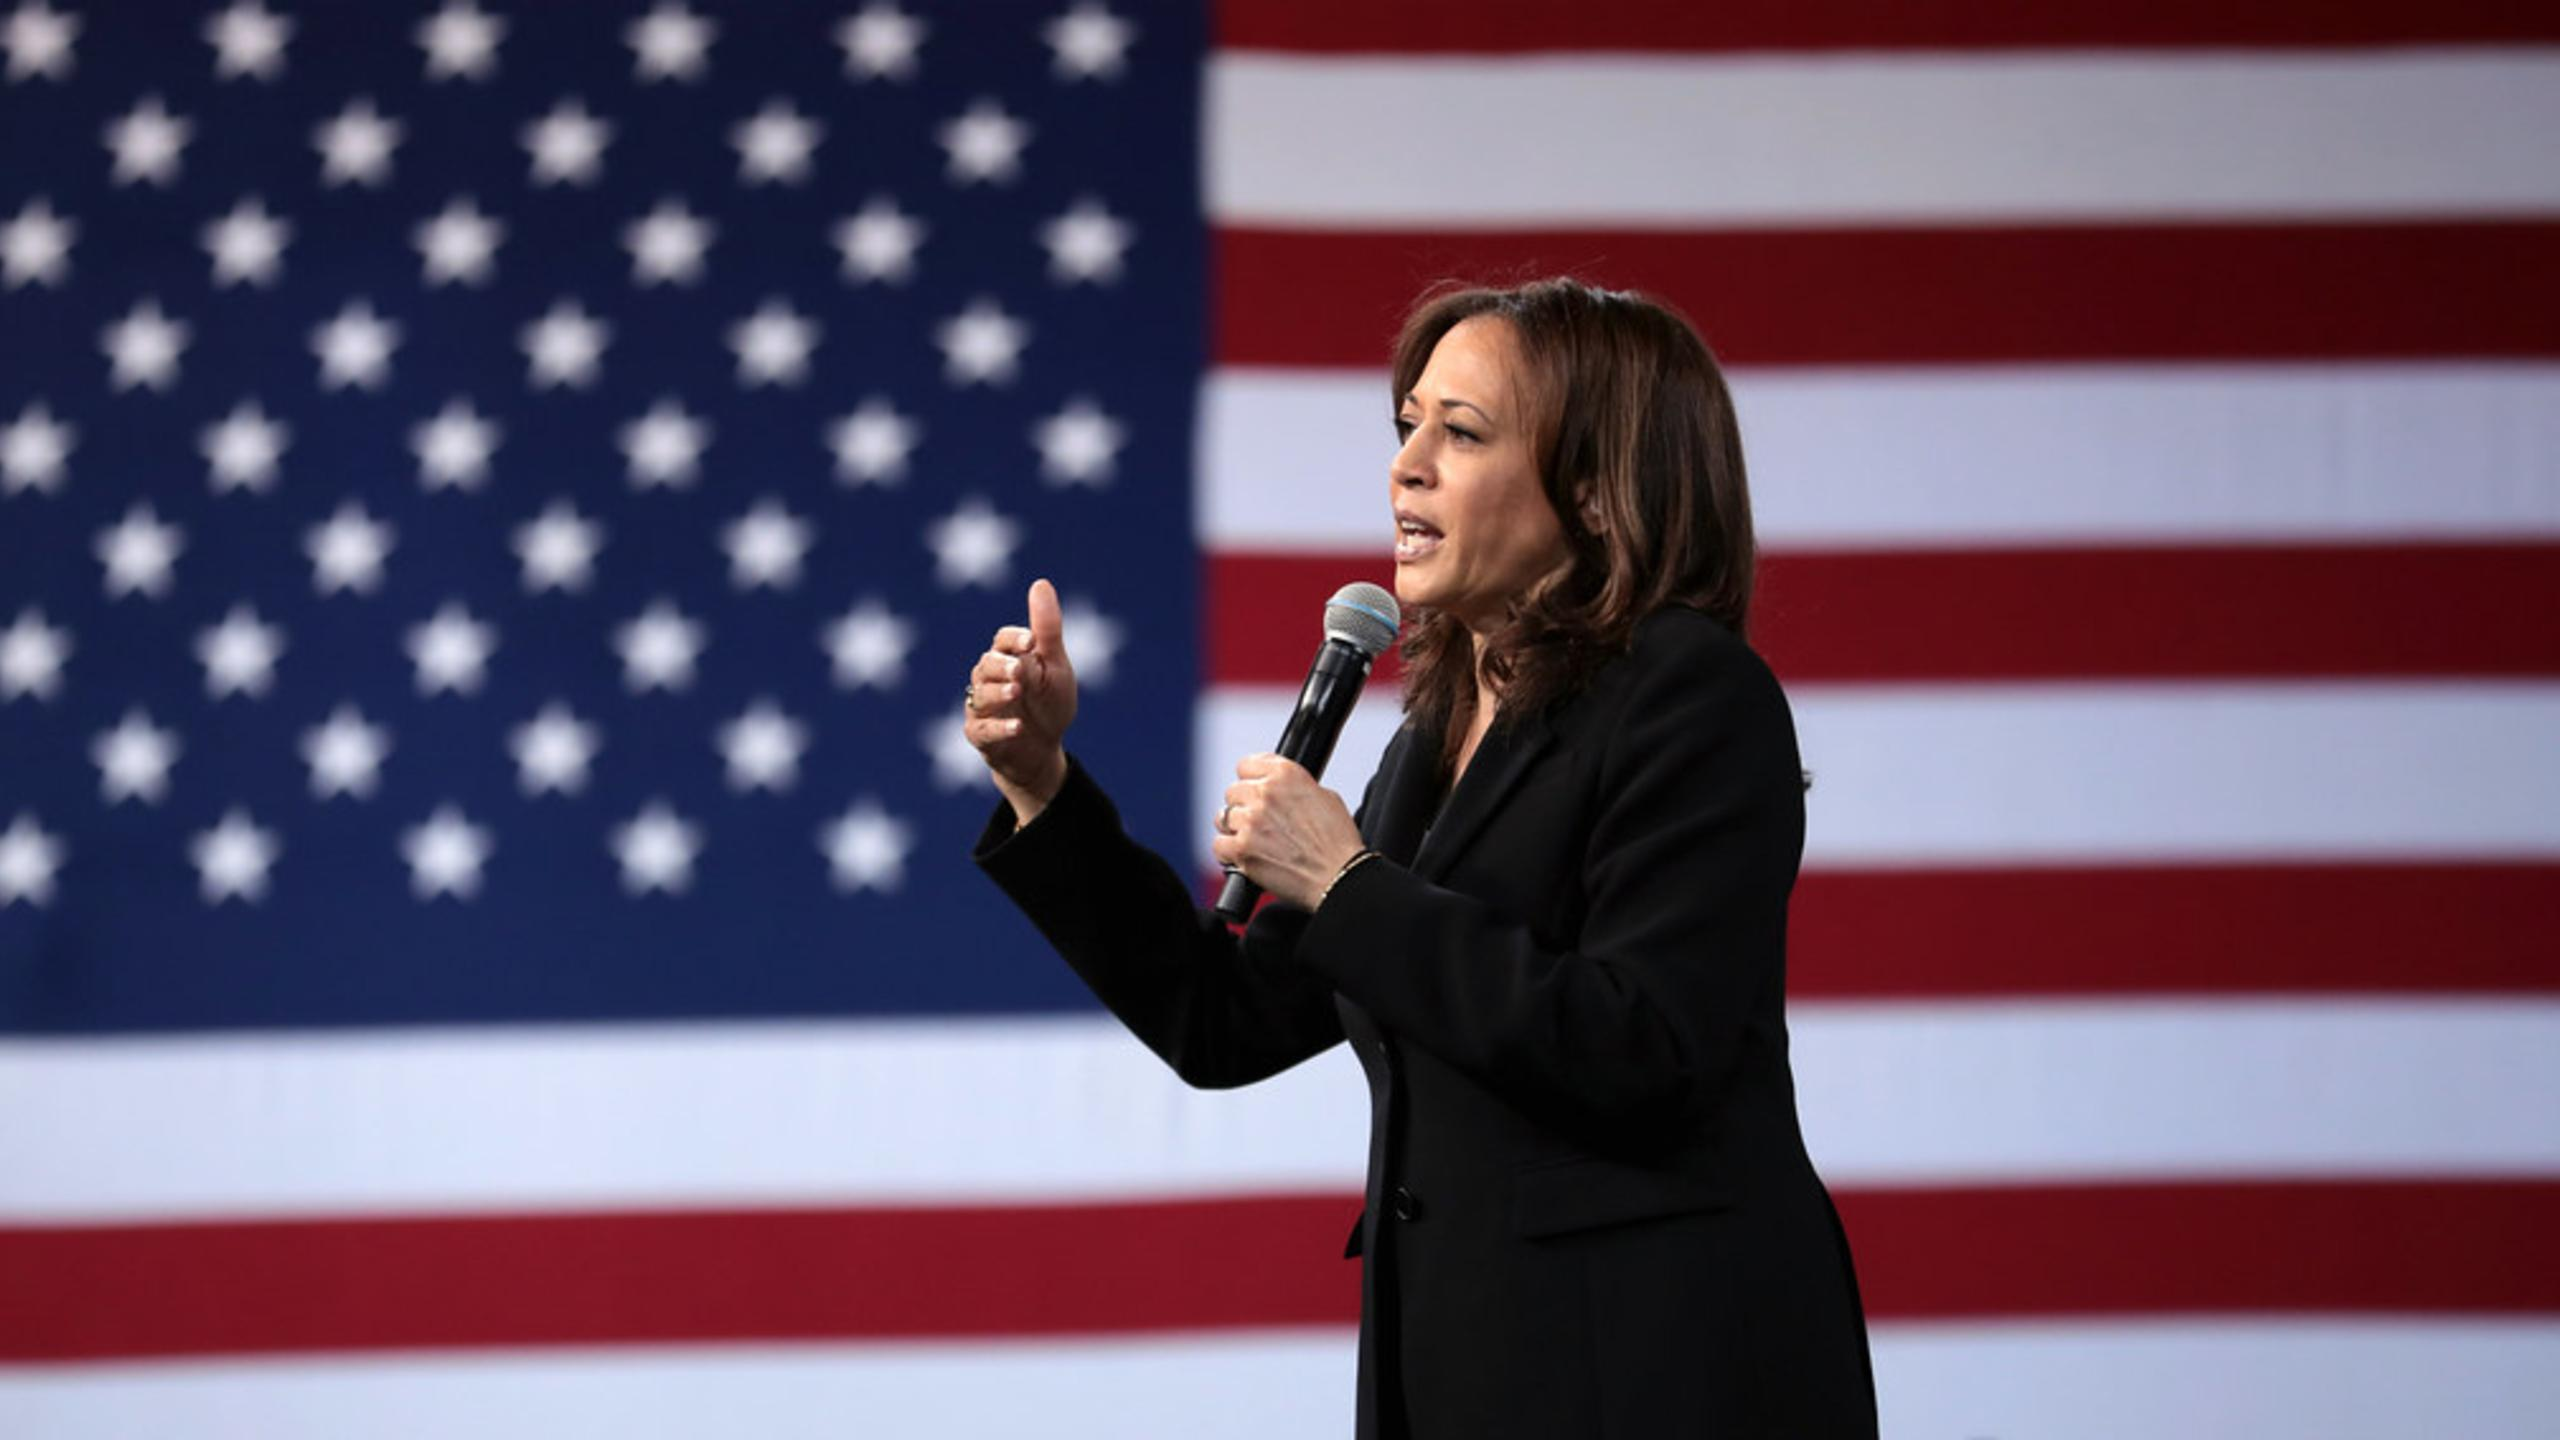 Kamala Harris wearing a black suit holding a microphone in front of an American flag